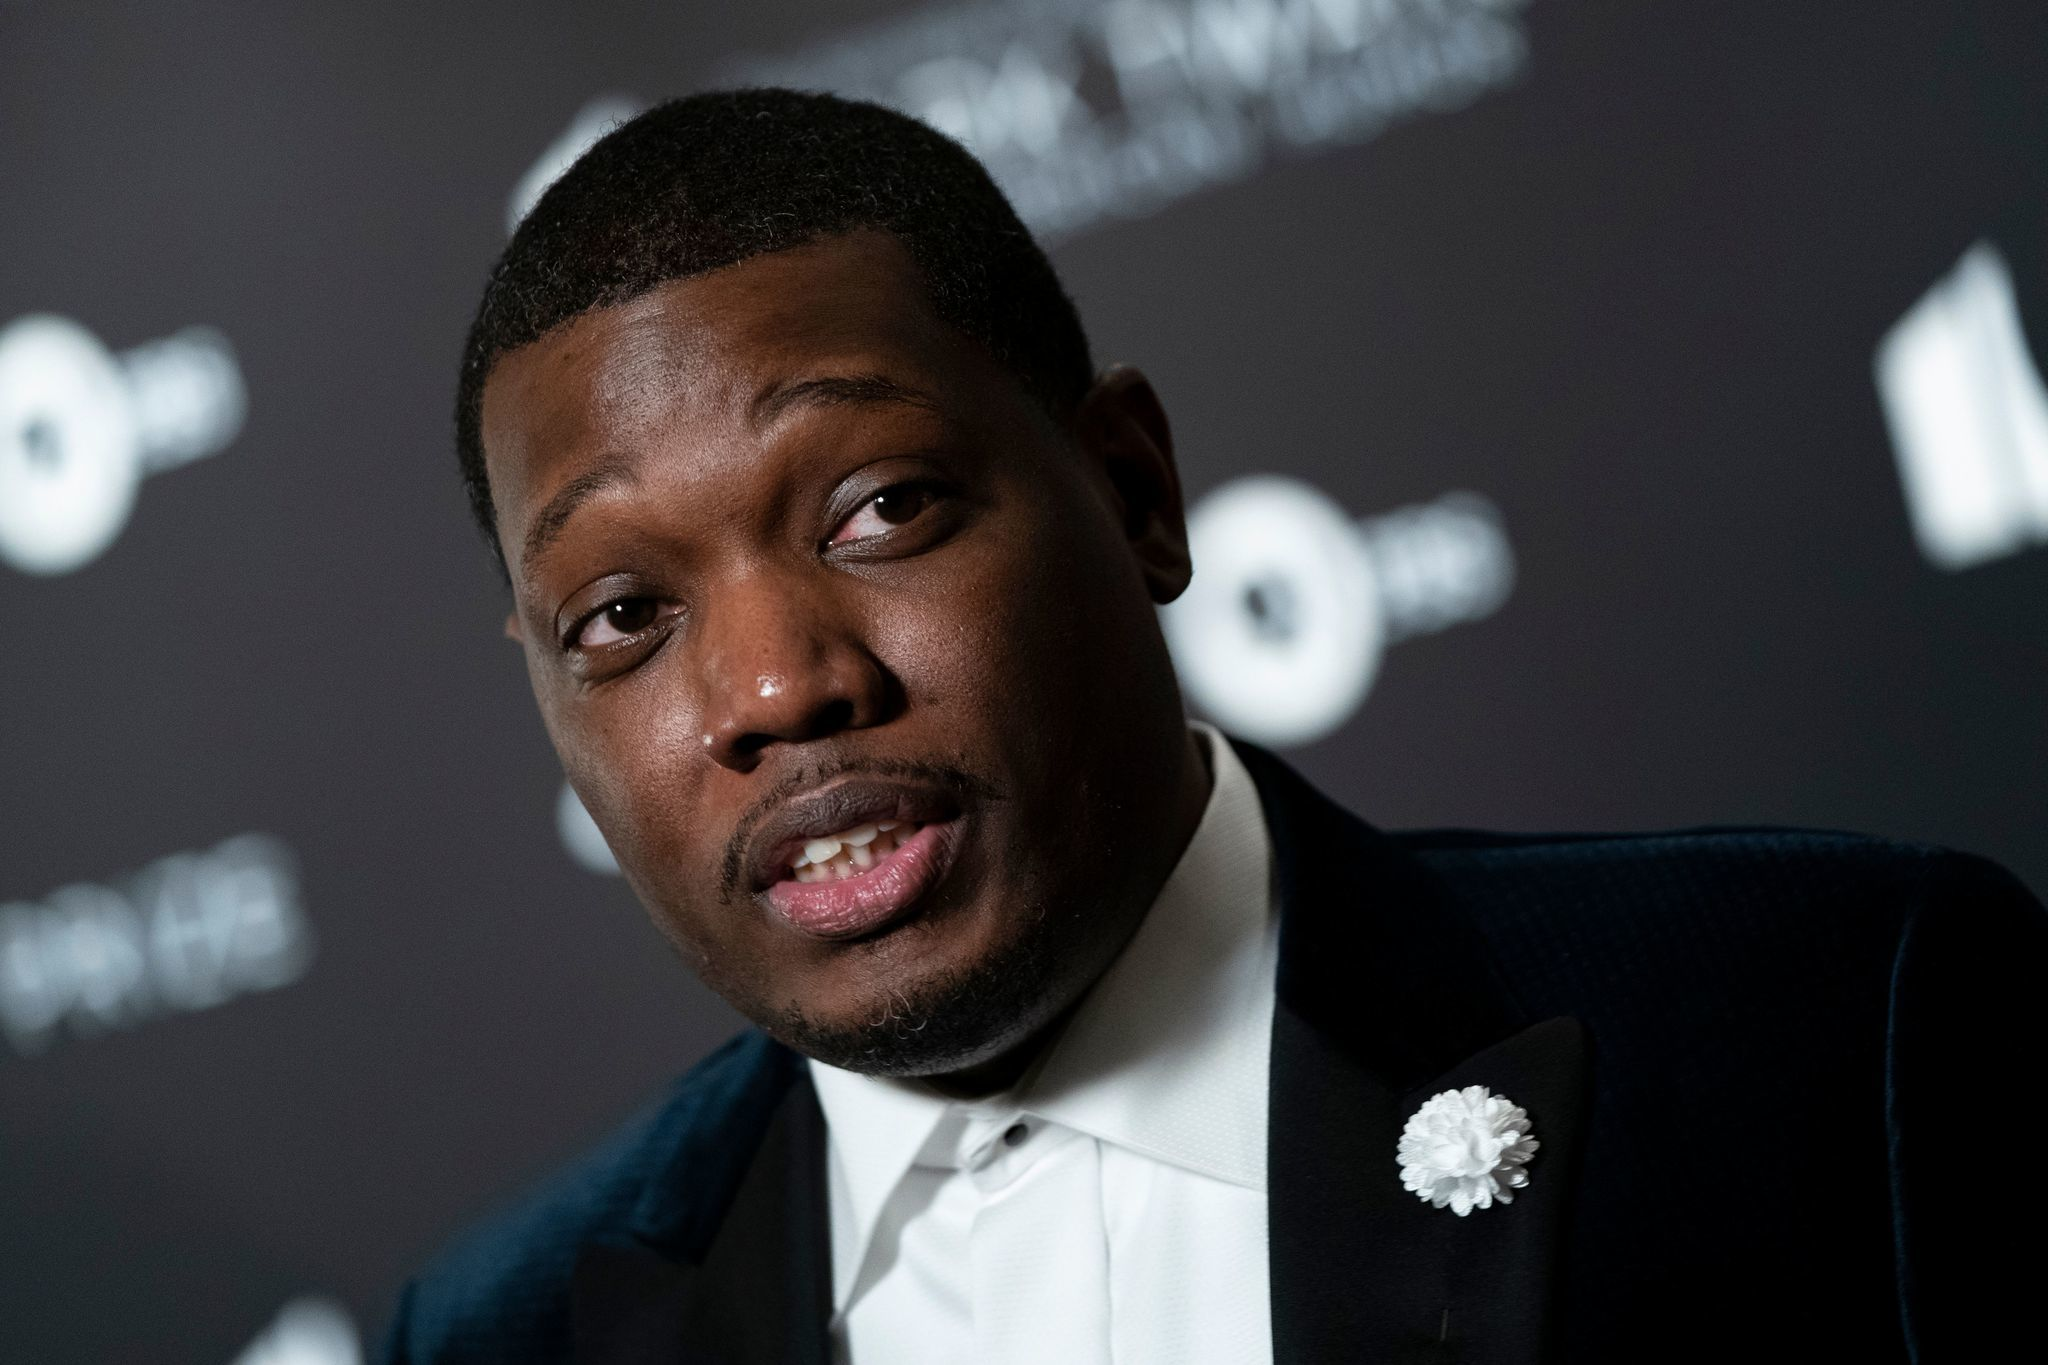 'Saturday Night Live' star Michael Che says his grandmother died from coronavirus